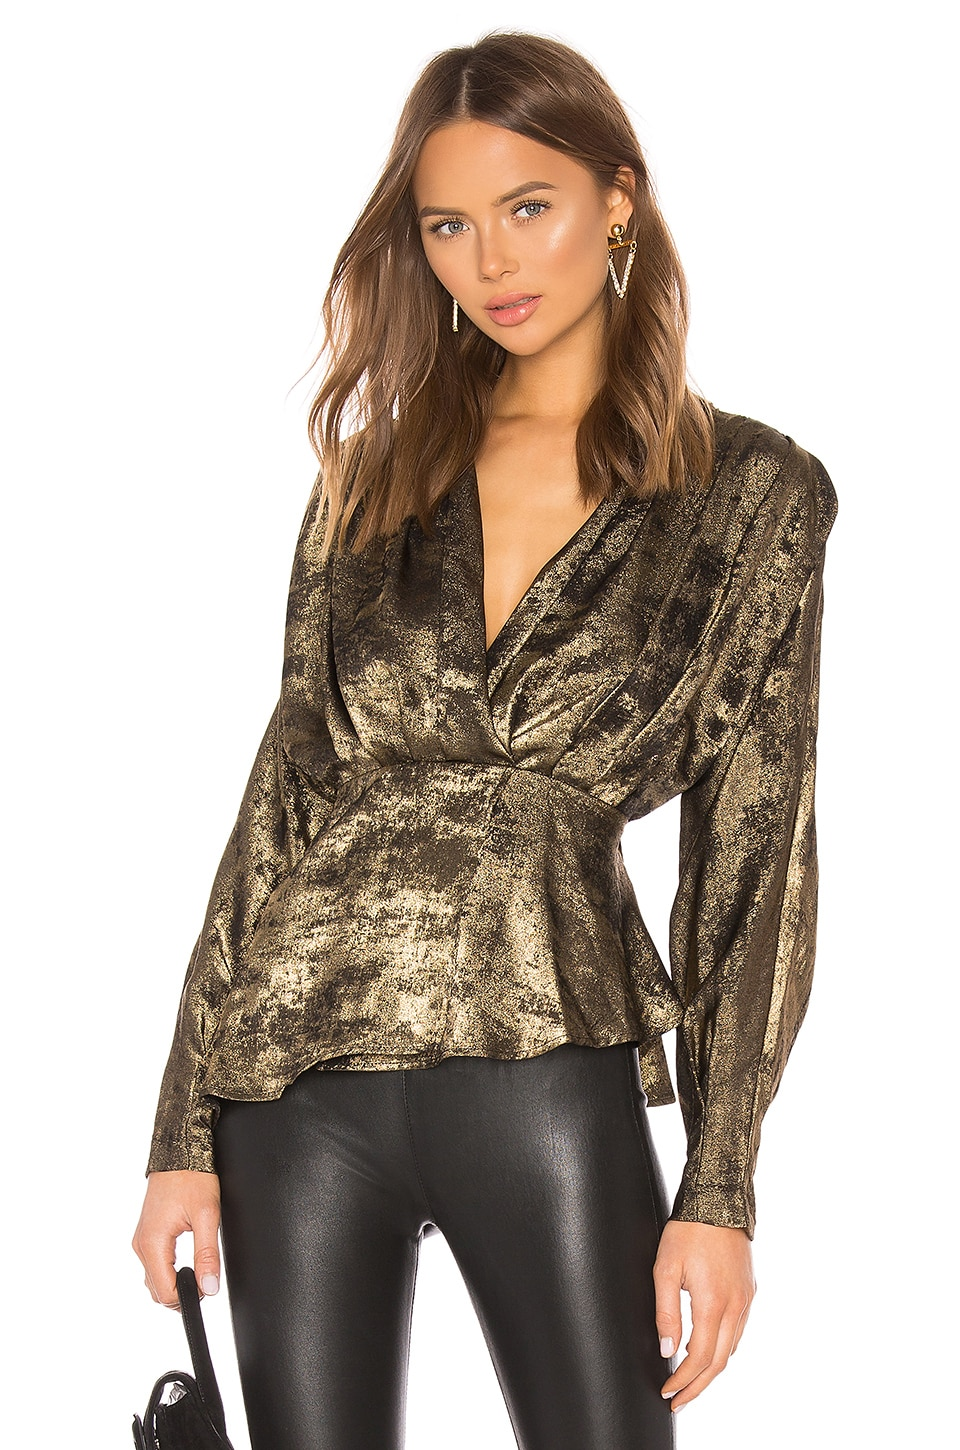 L'Academie The Benae Blouse in Black & Gold